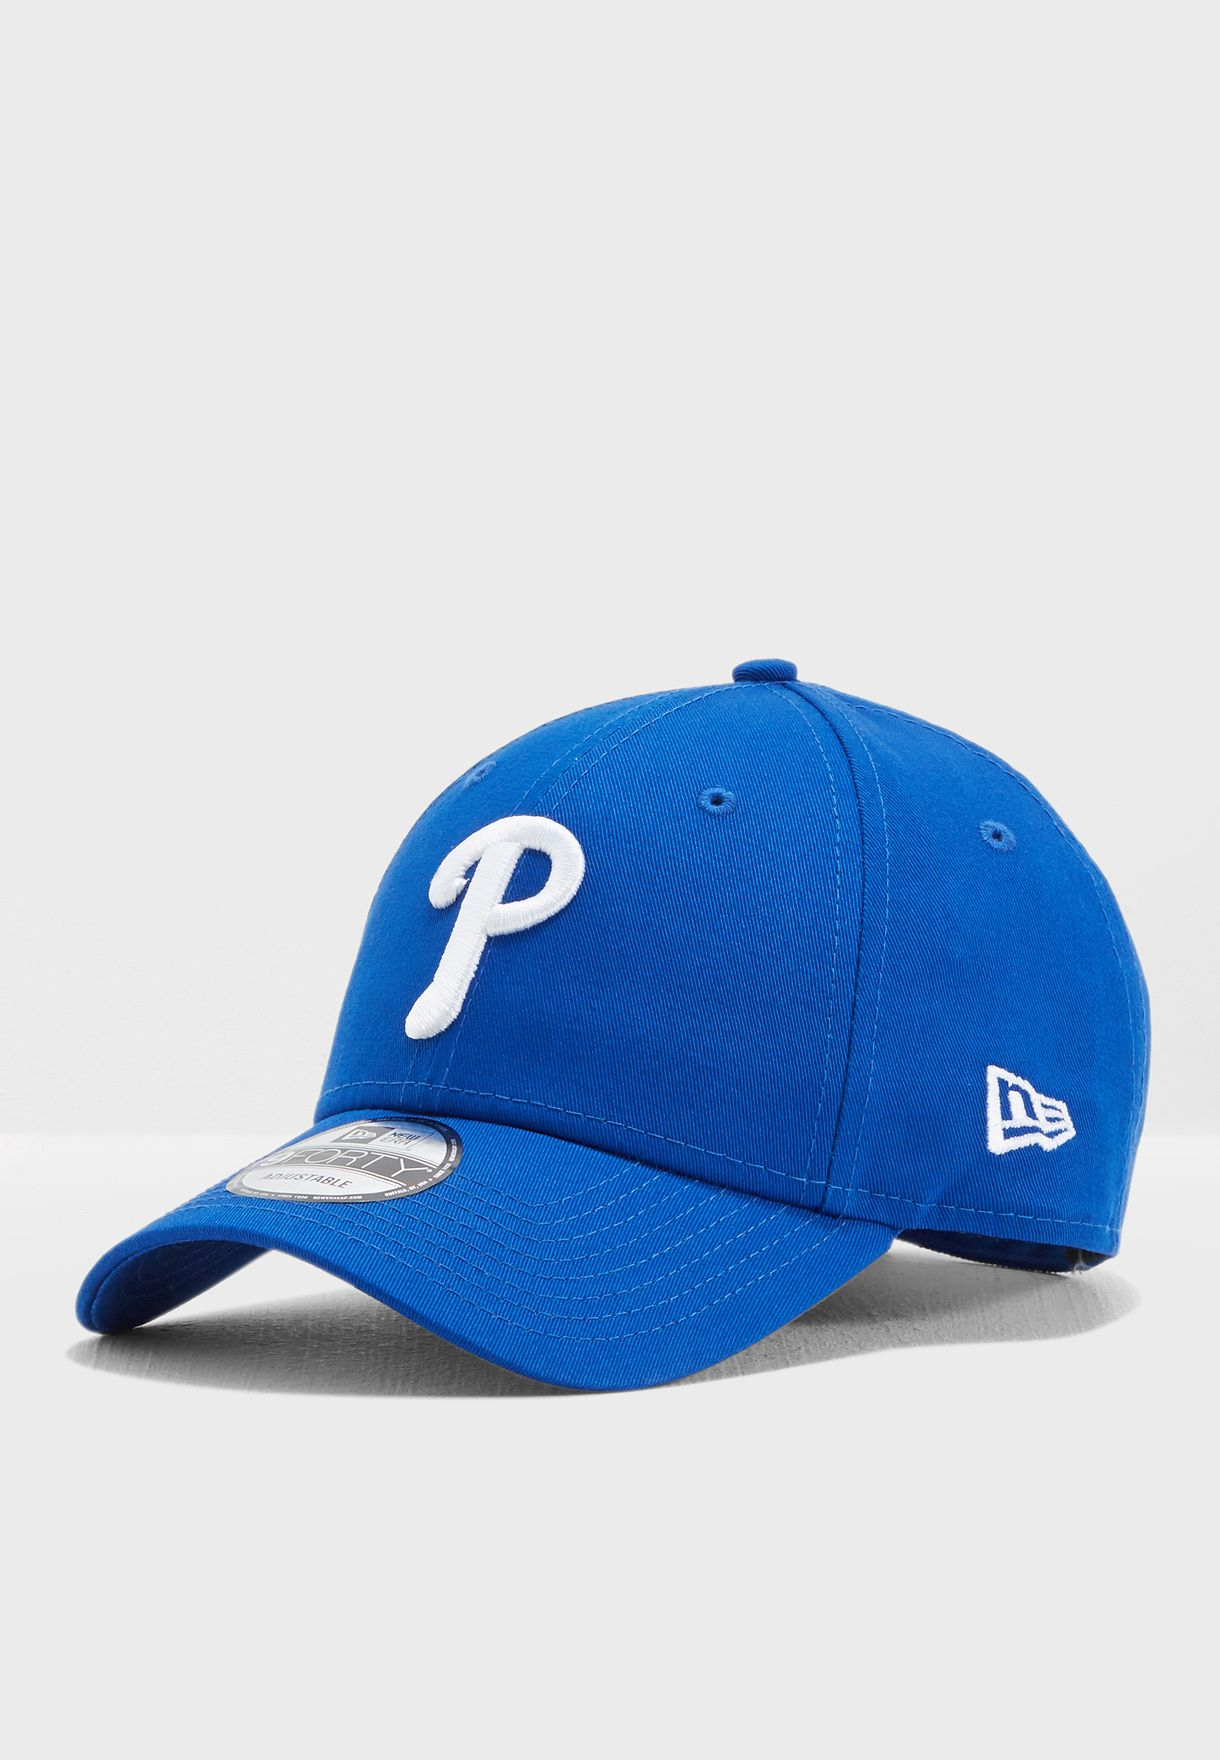 on sale 00569 b0a3c reduced shop new era blue 9forty philadelphia phillies baseball cap  11586119 for men in uae ne207ac83tpk